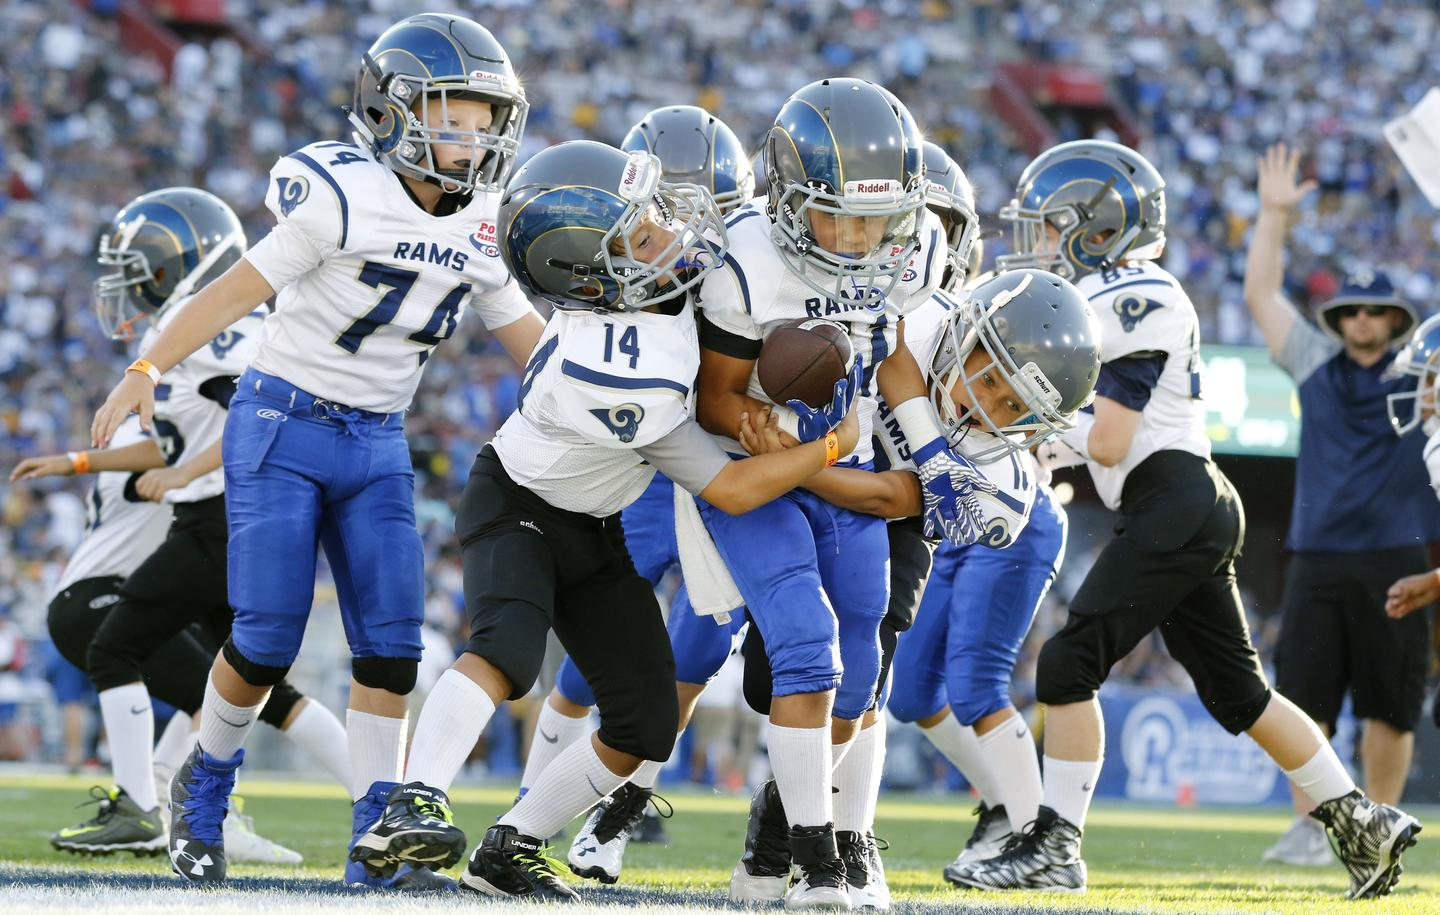 should children under 14 play contact sports A maryland lawmaker is drafting a bill that would ban tackling in football for children under the age of 14.